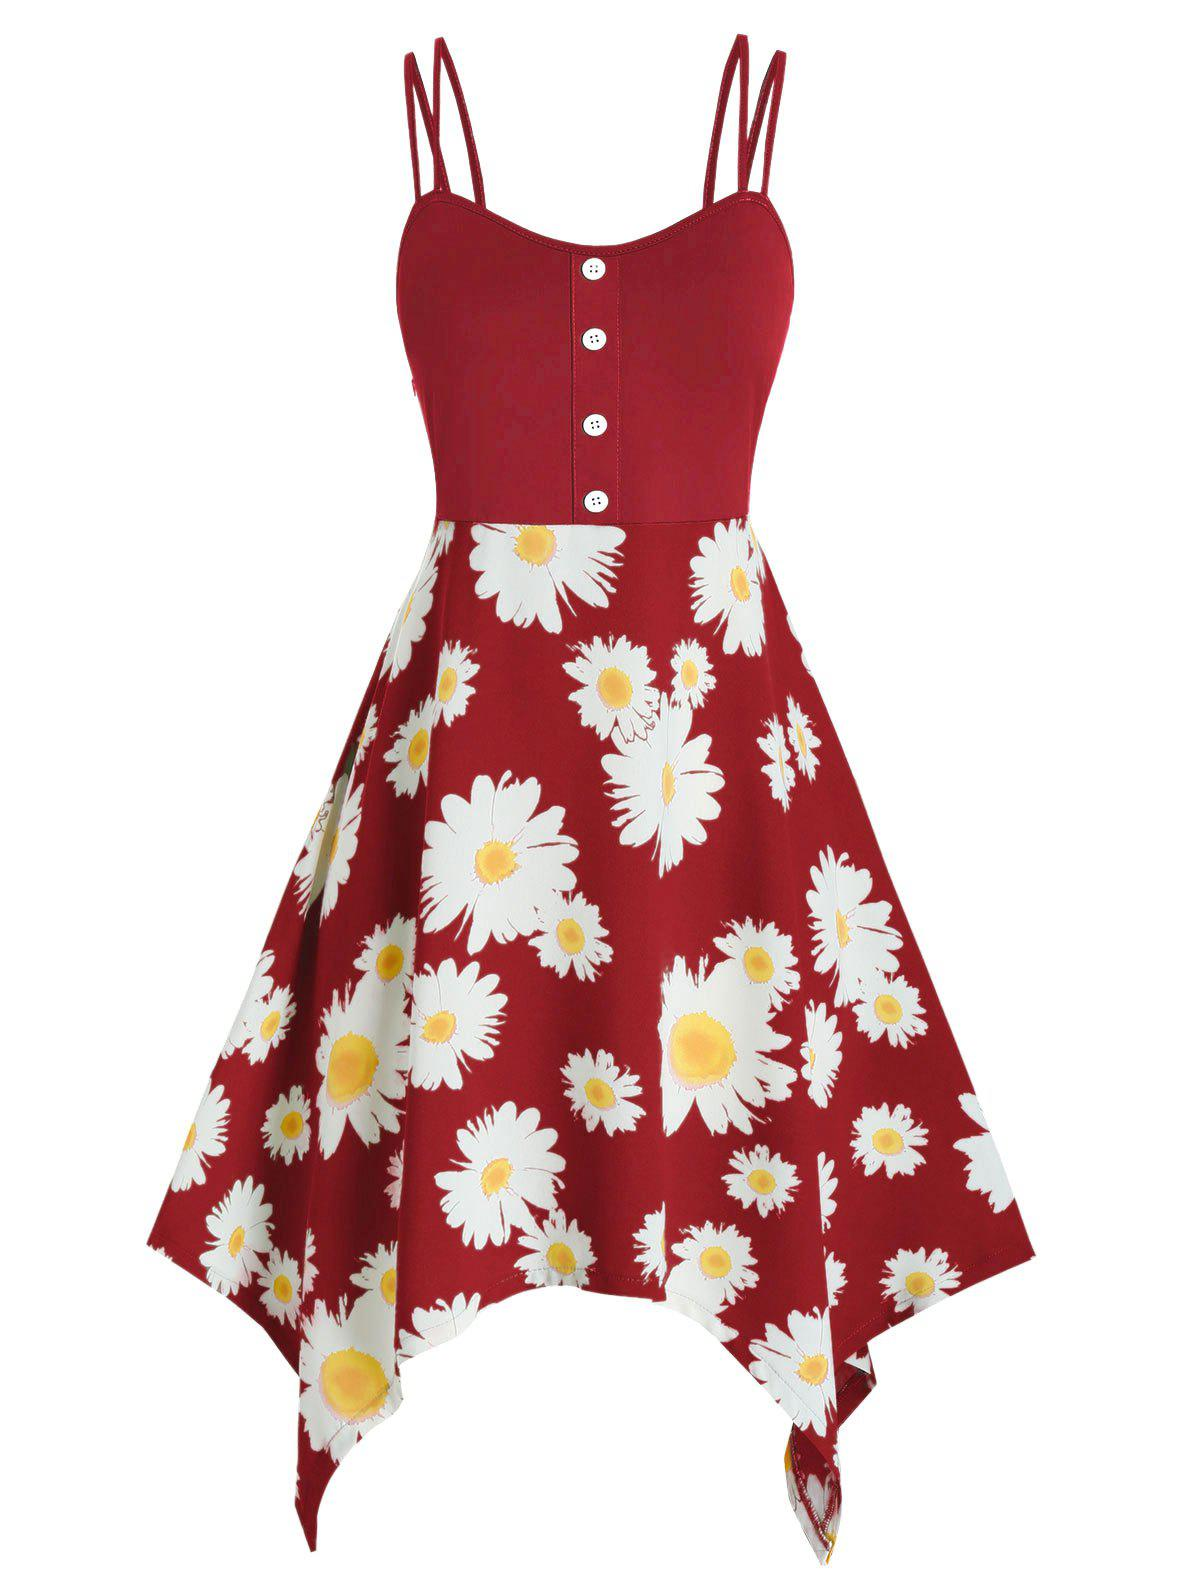 Shop Plus Size Daisy Flower Hanky Hem Dual Strap Dress